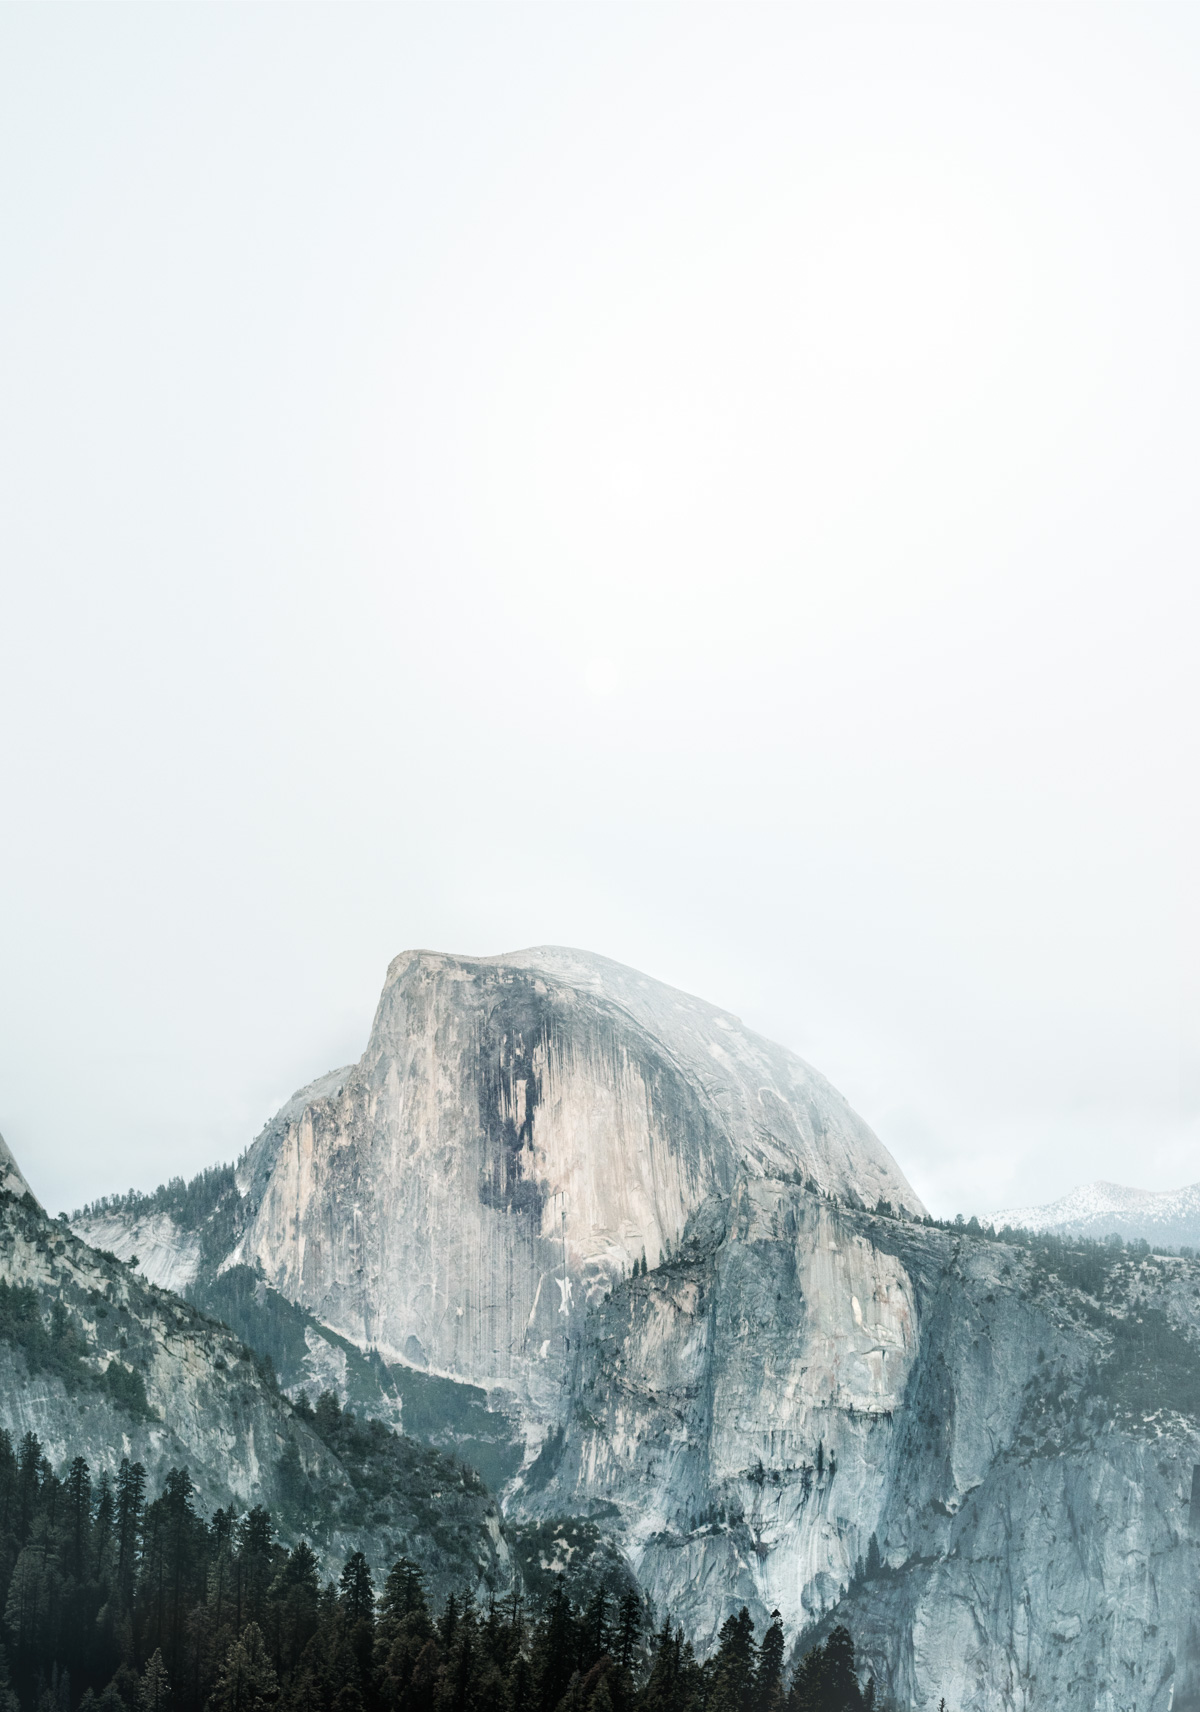 Yosemite_TomLindboe_Photography (1 of 1)